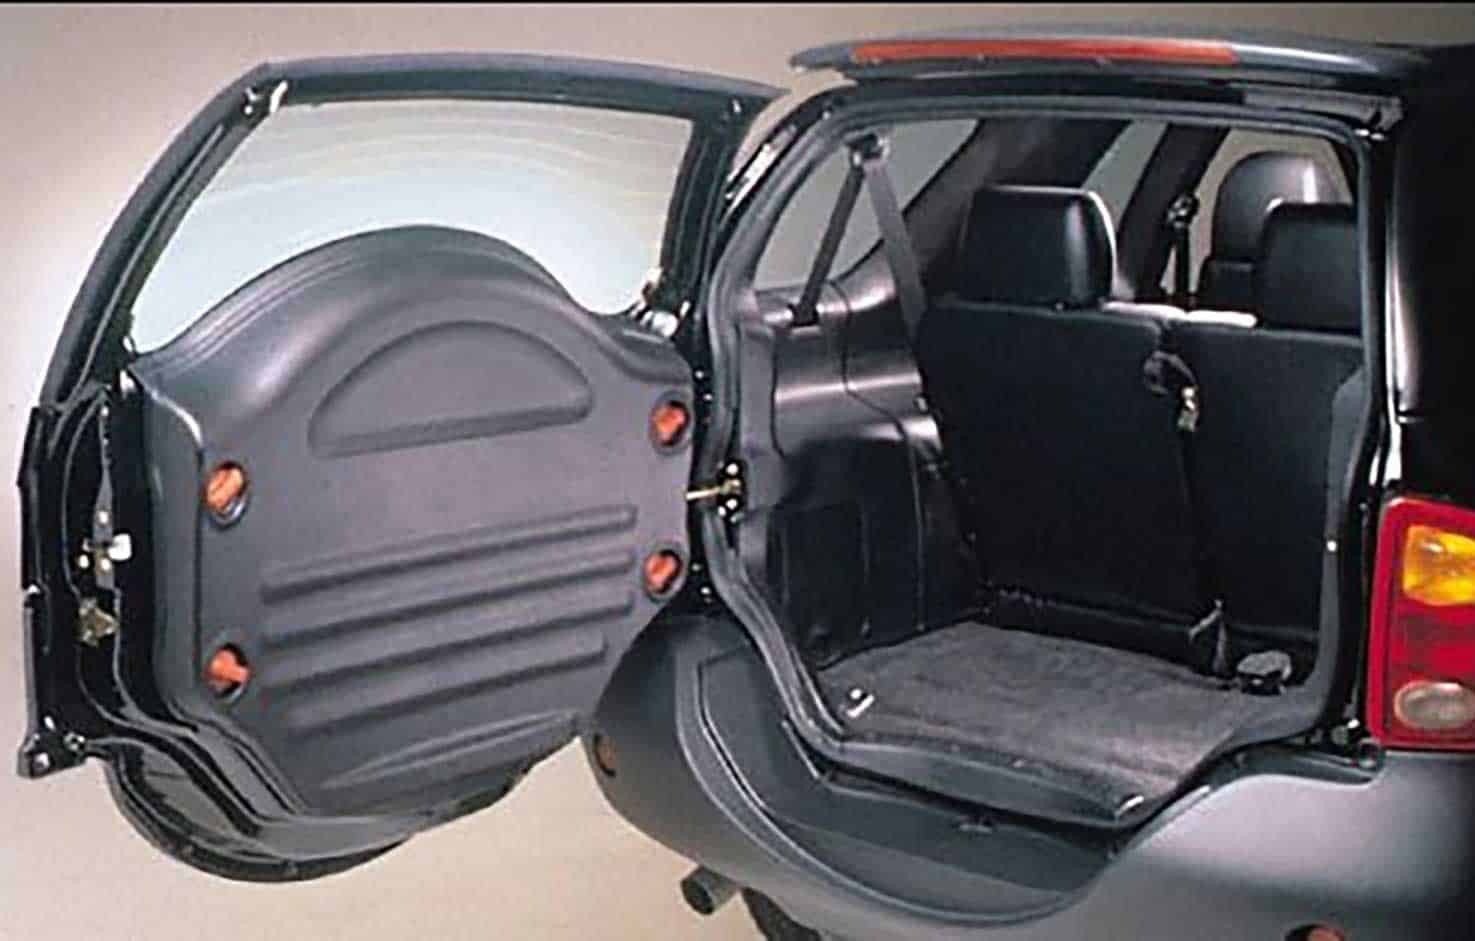 Spare tire is accessed from inside the vehicle